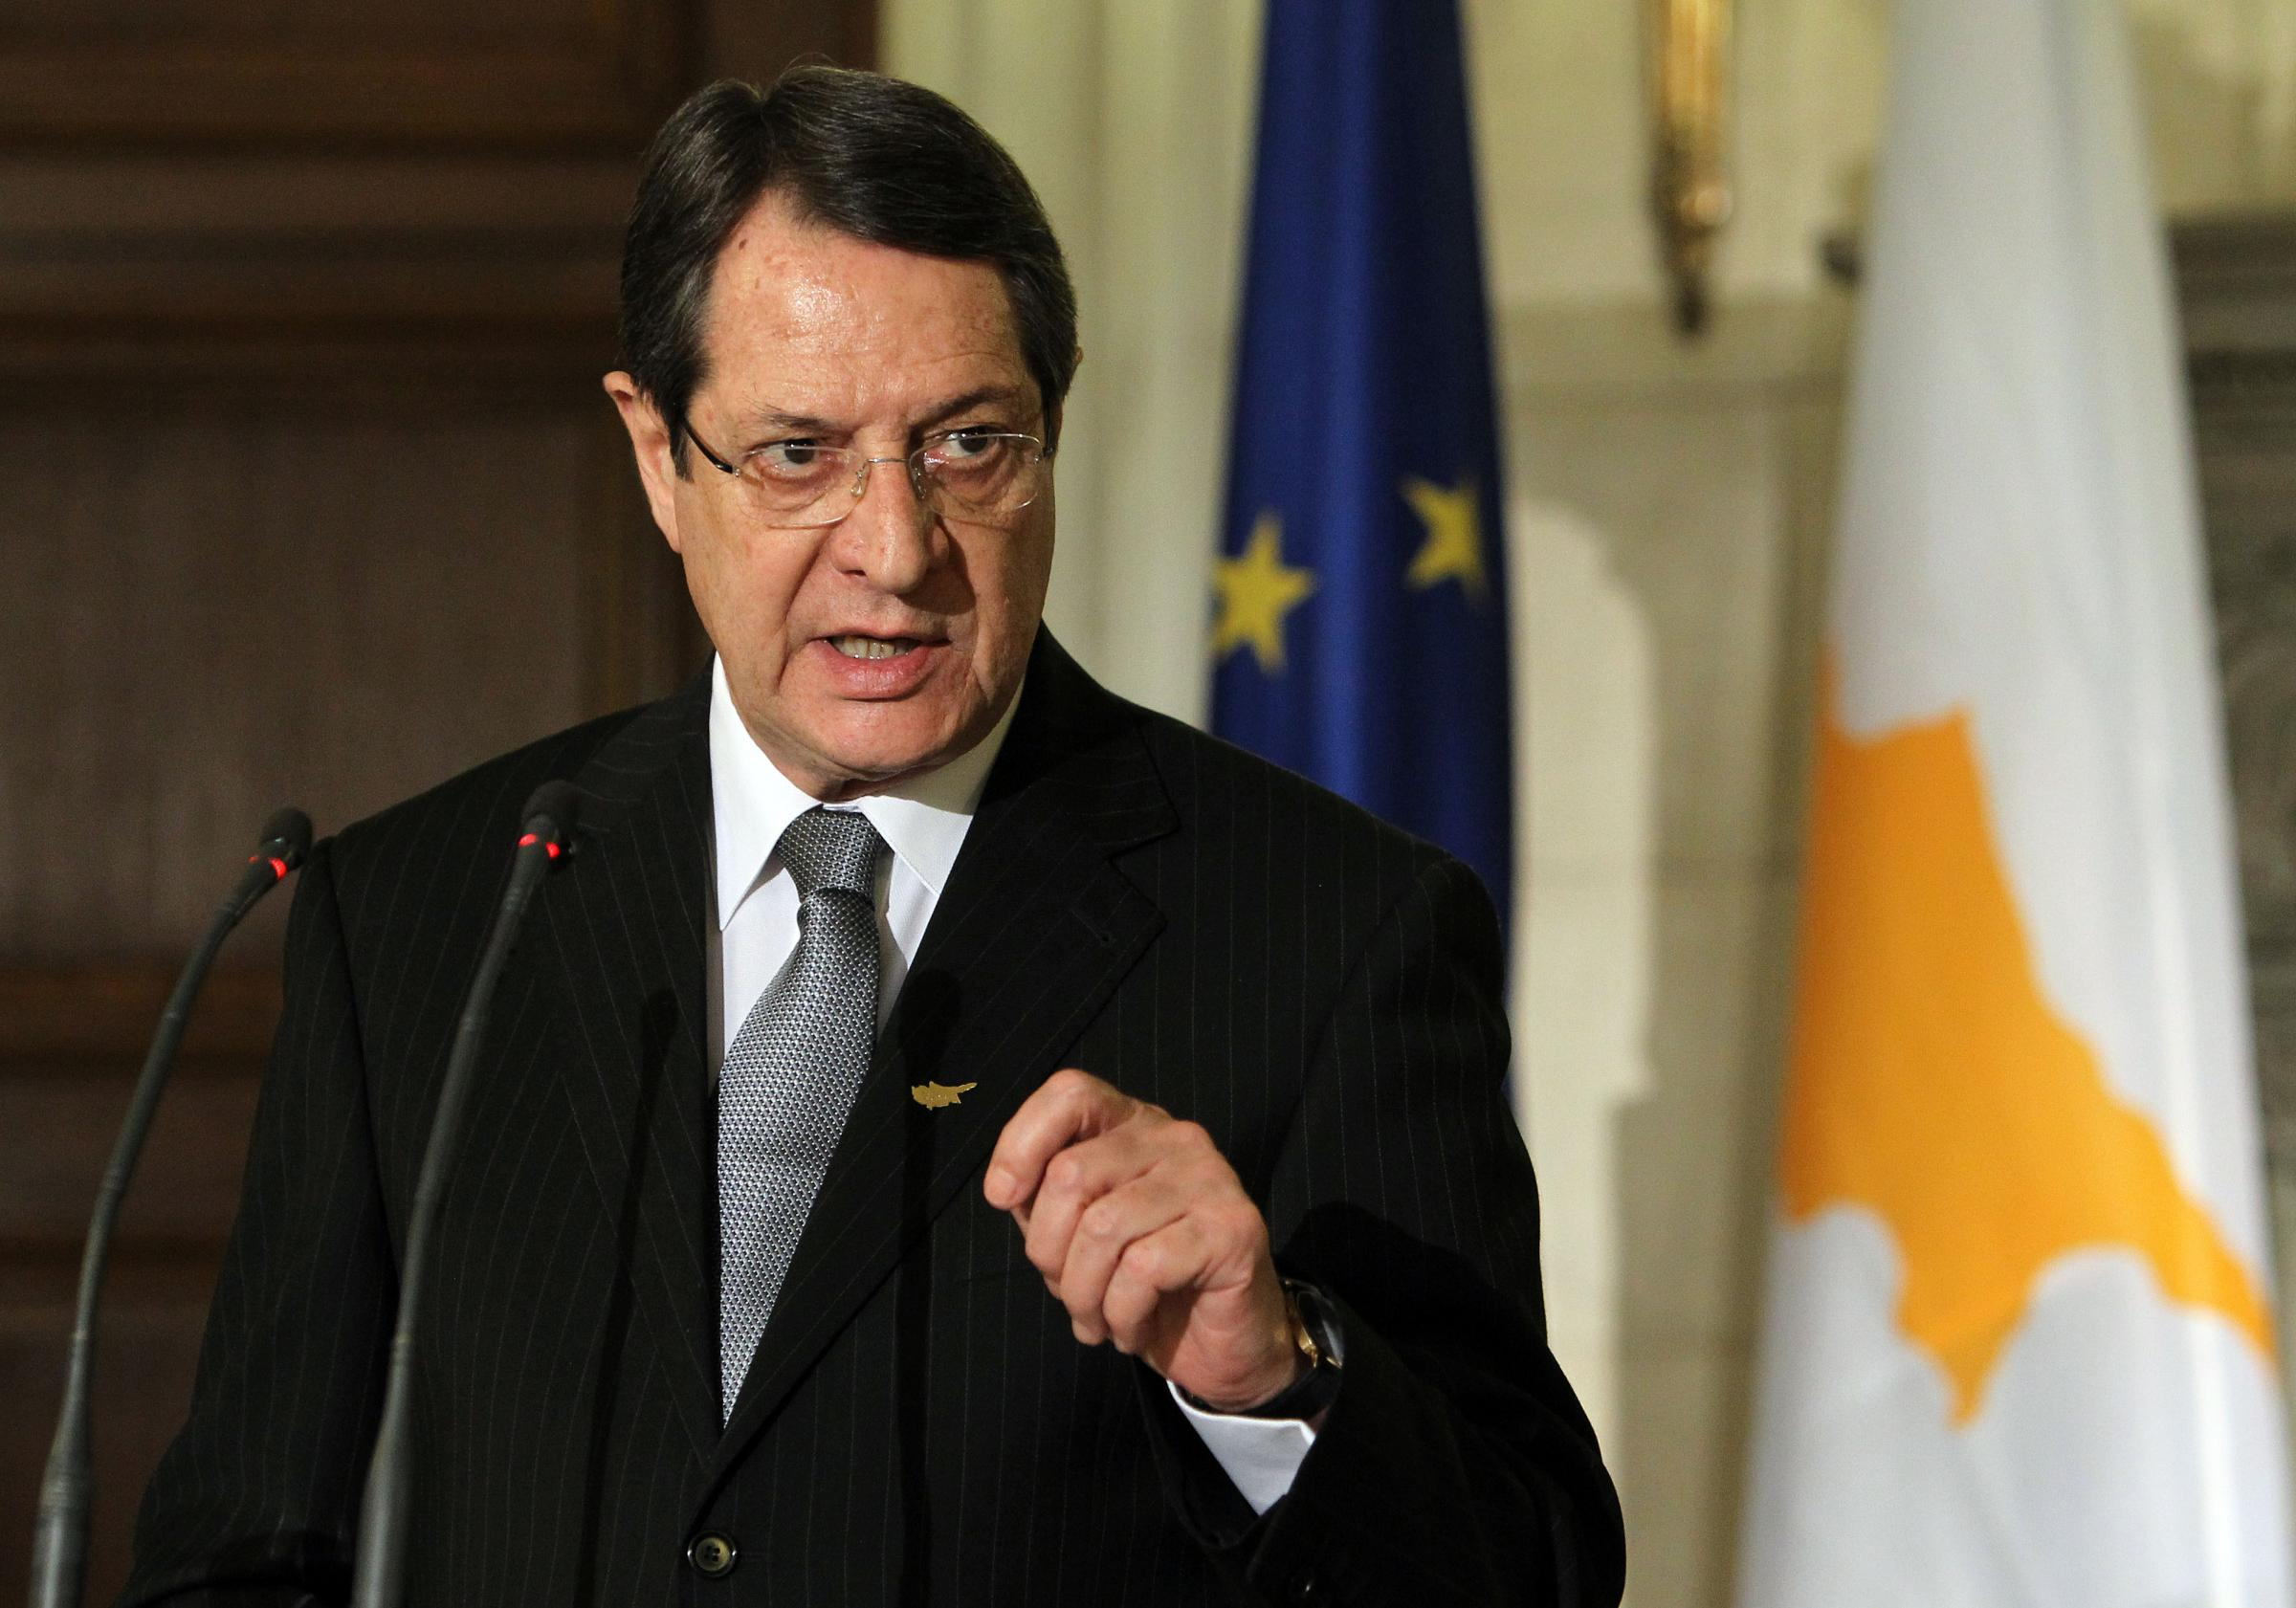 Anastasiades: I am not as optimistic as I would have liked for the Cyprus issue